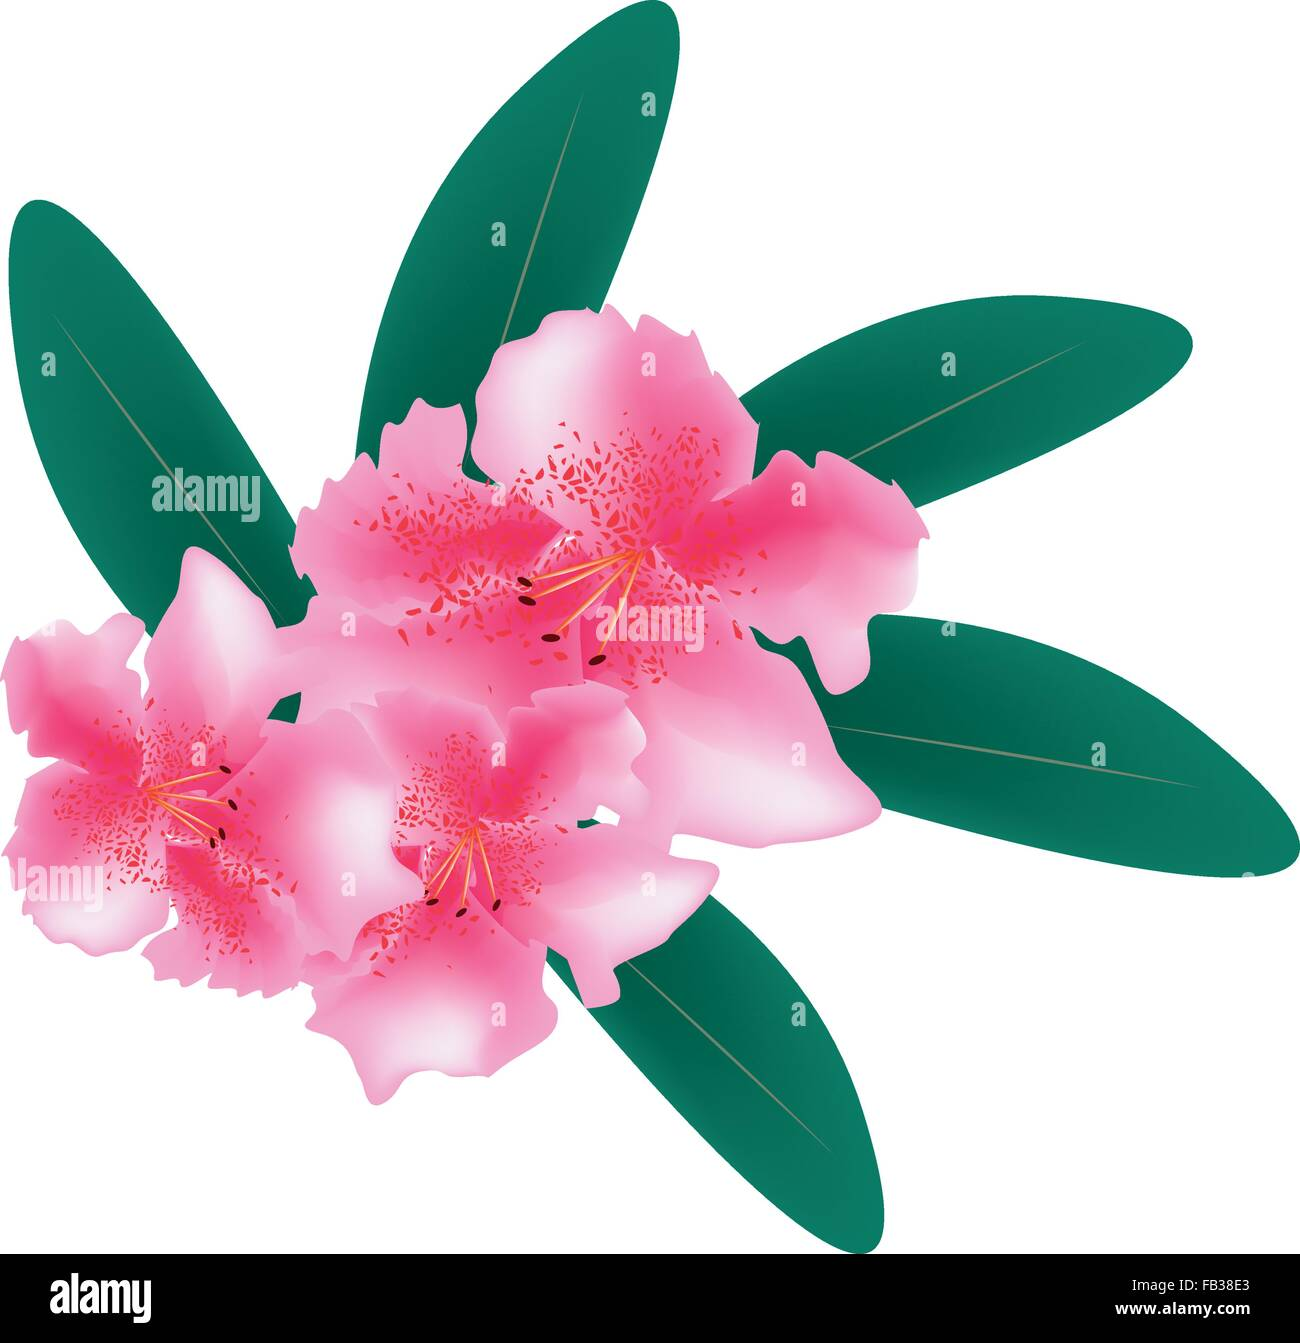 Beautiful Flower, Illustration of Pink Rhododendron Ponticum Flowers with Green Leaves Isolated on A White Background. - Stock Vector